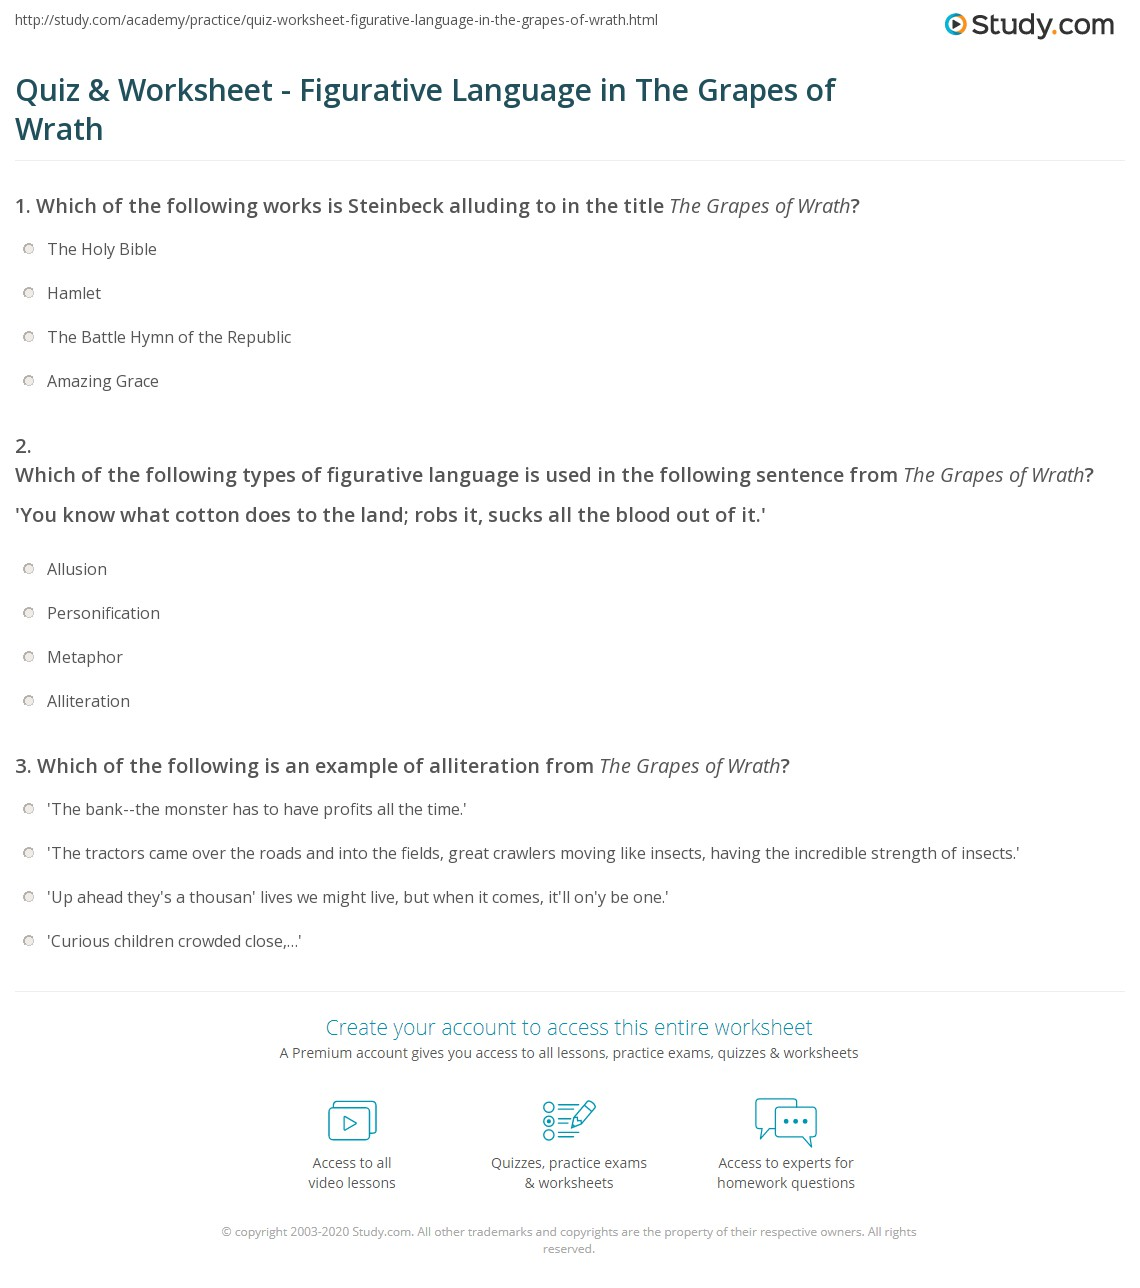 quiz & worksheet - figurative language in the grapes of wrath